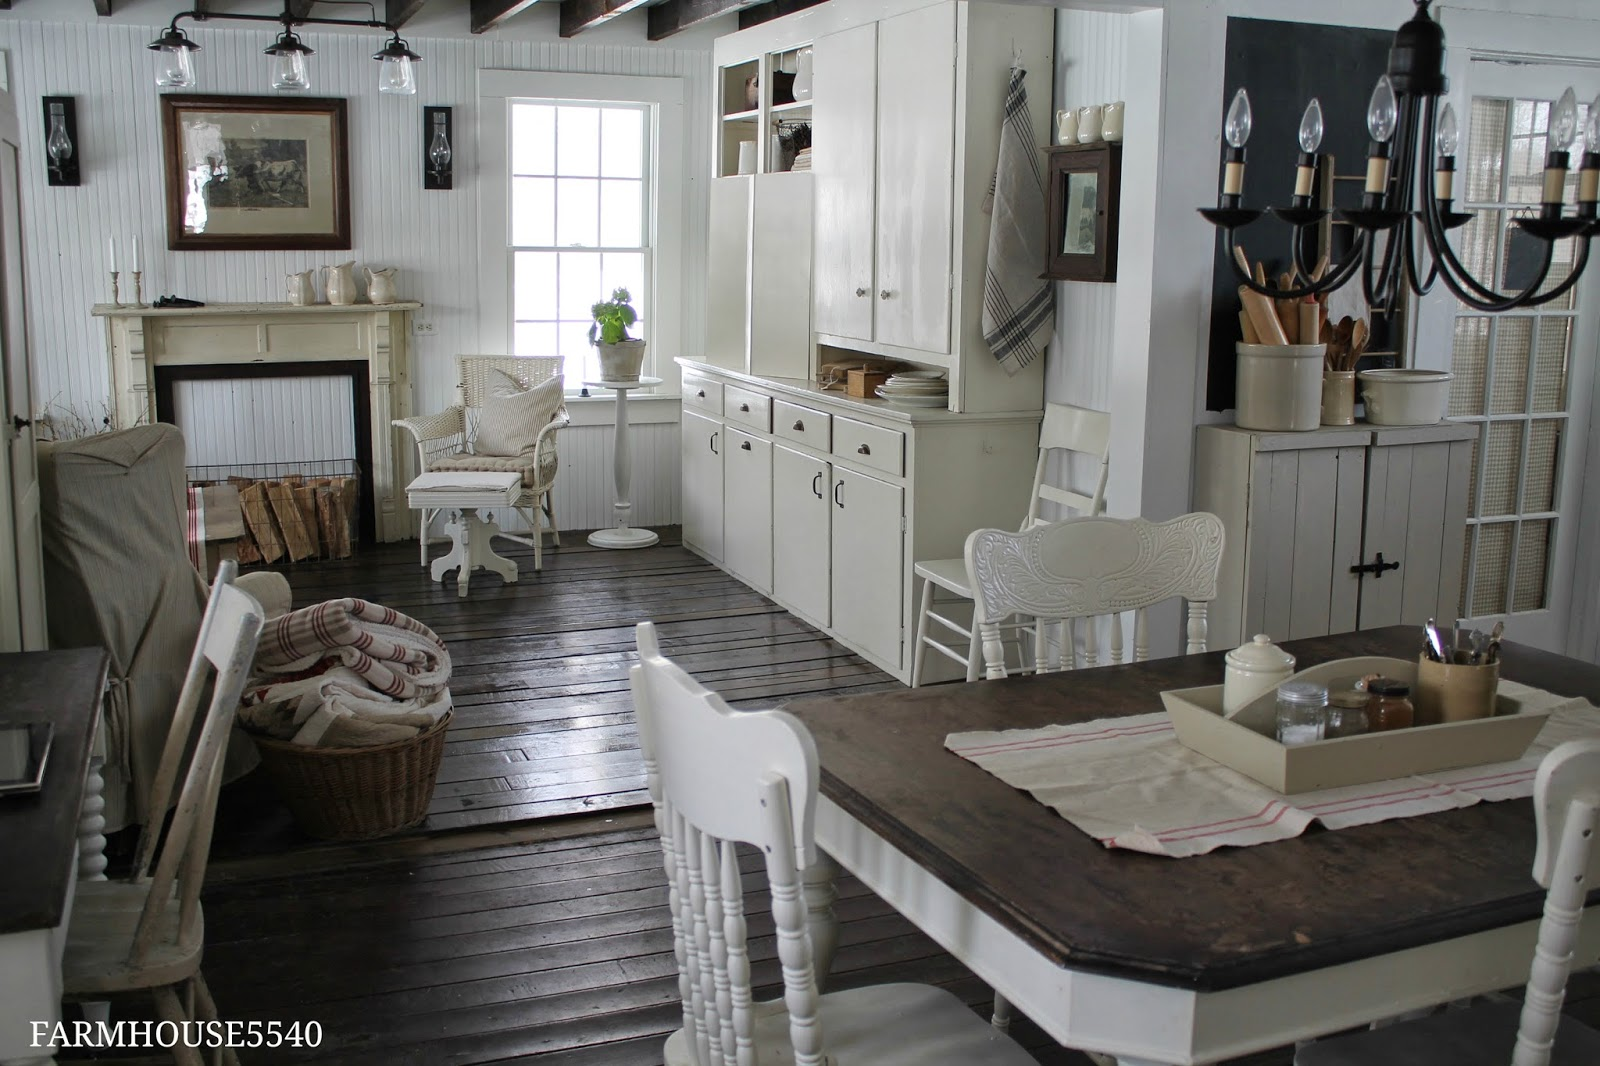 Kitchen Sink At Lowes Banquettes Farmhouse 5540: Family Room Part Three